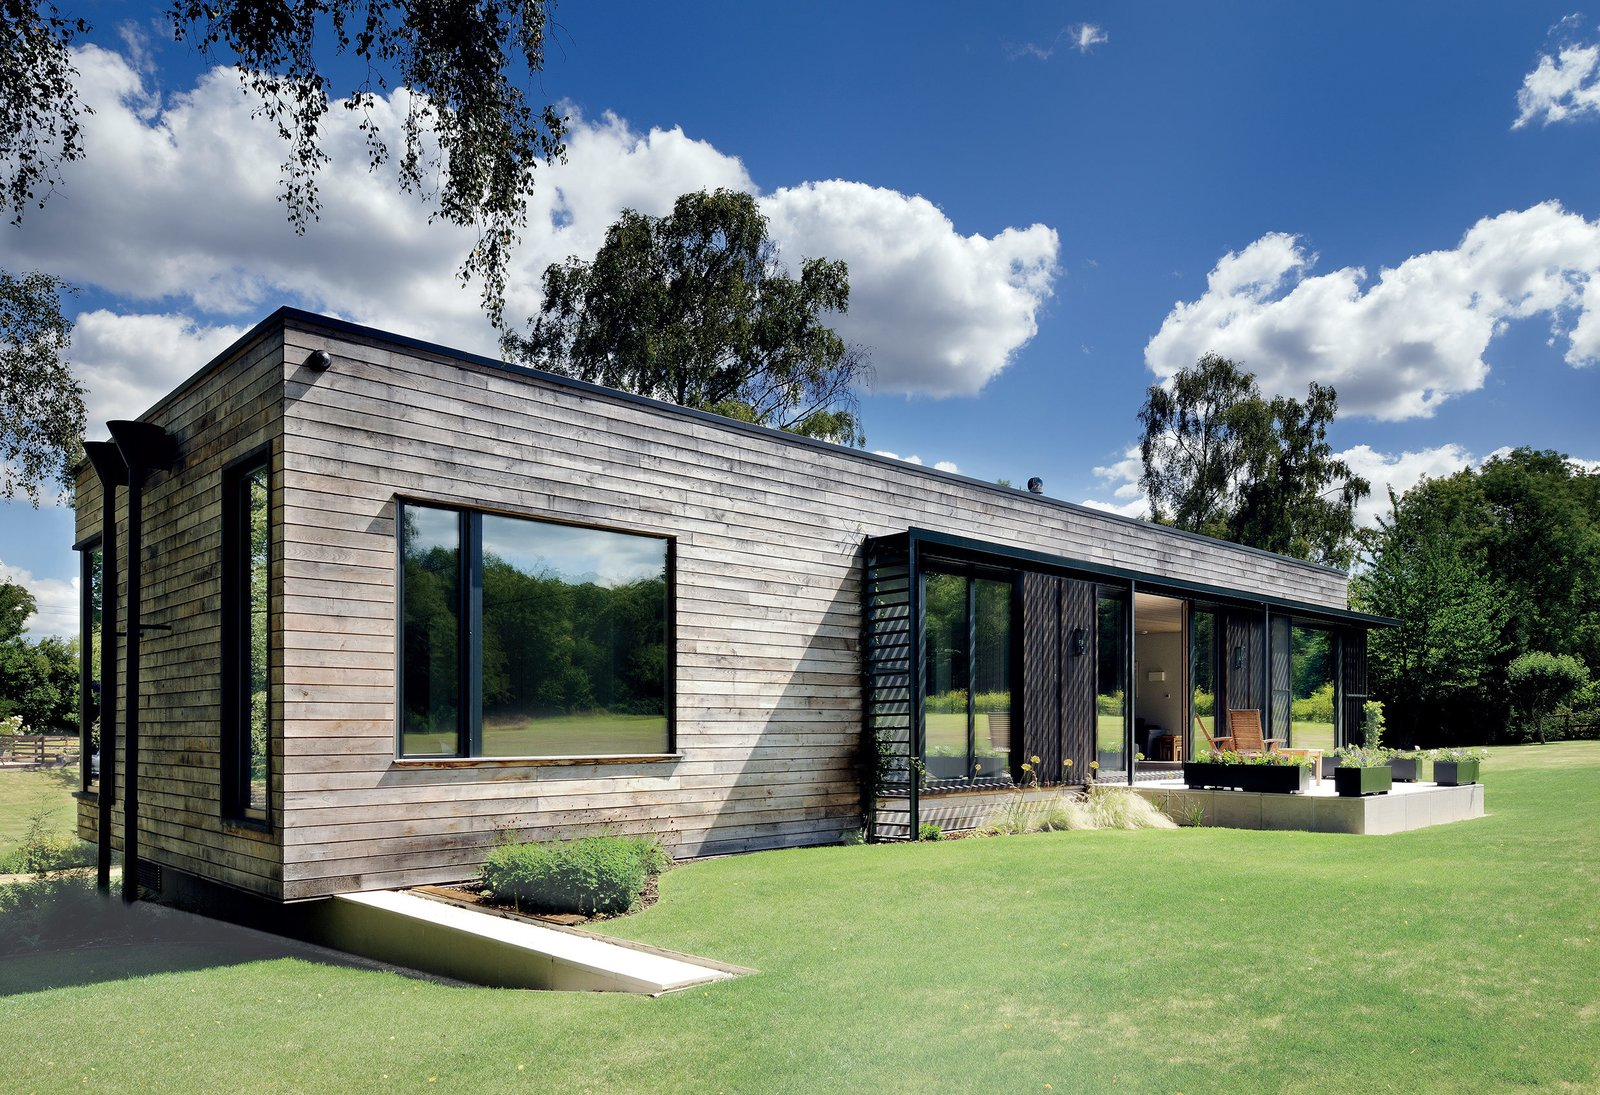 A Modern Mobile Home Dropped In Place By Crane  Dwell